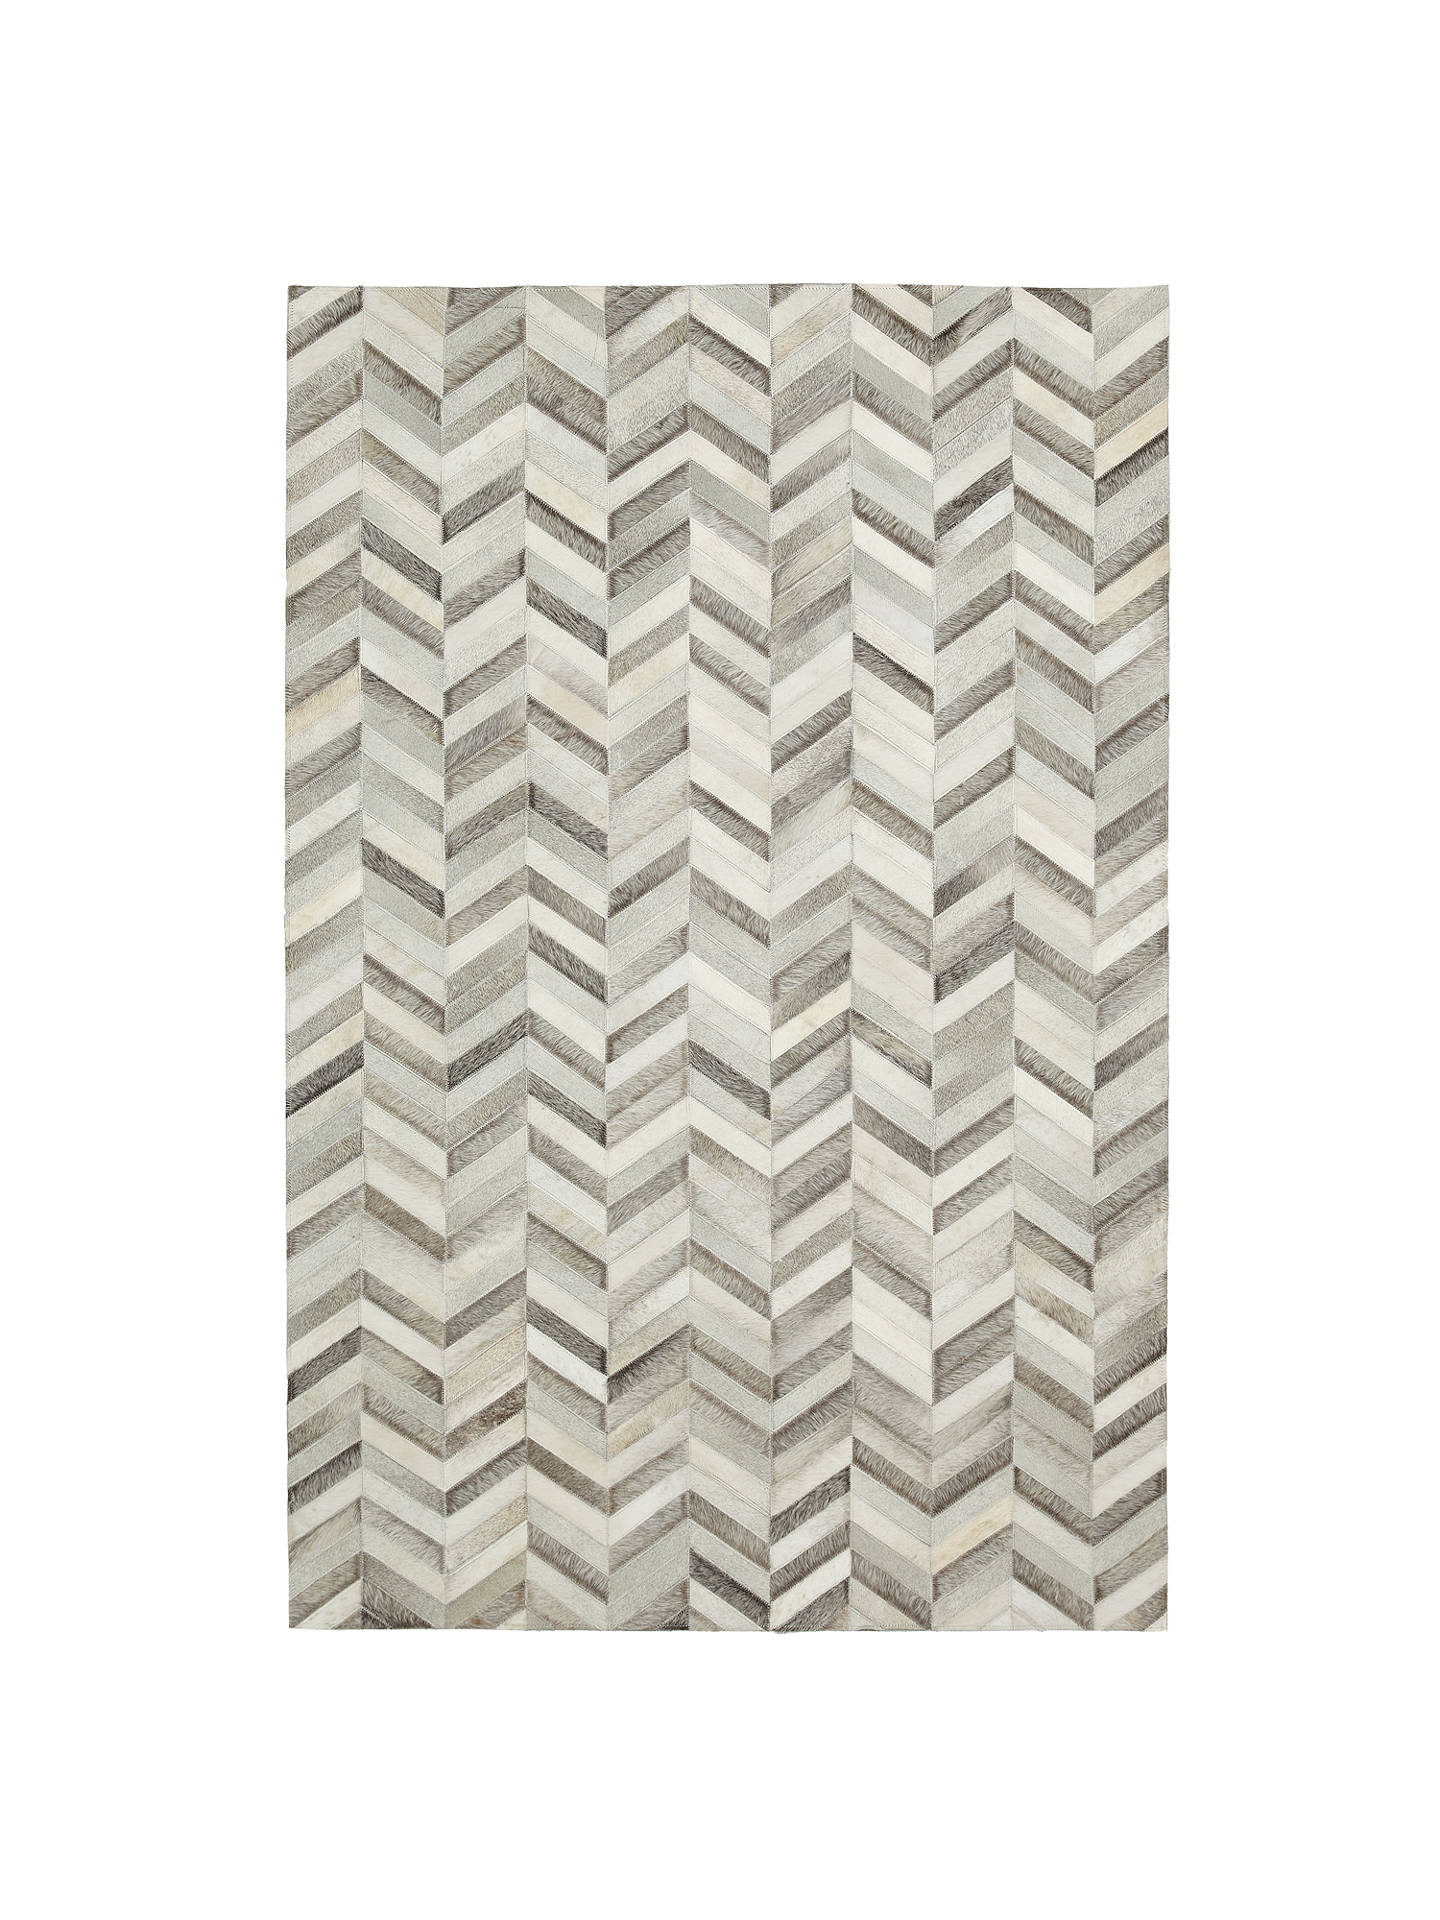 BuyJohn Lewis & Partners Cowhide Chevron Rug, Grey, L180 x W120cm Online at johnlewis.com